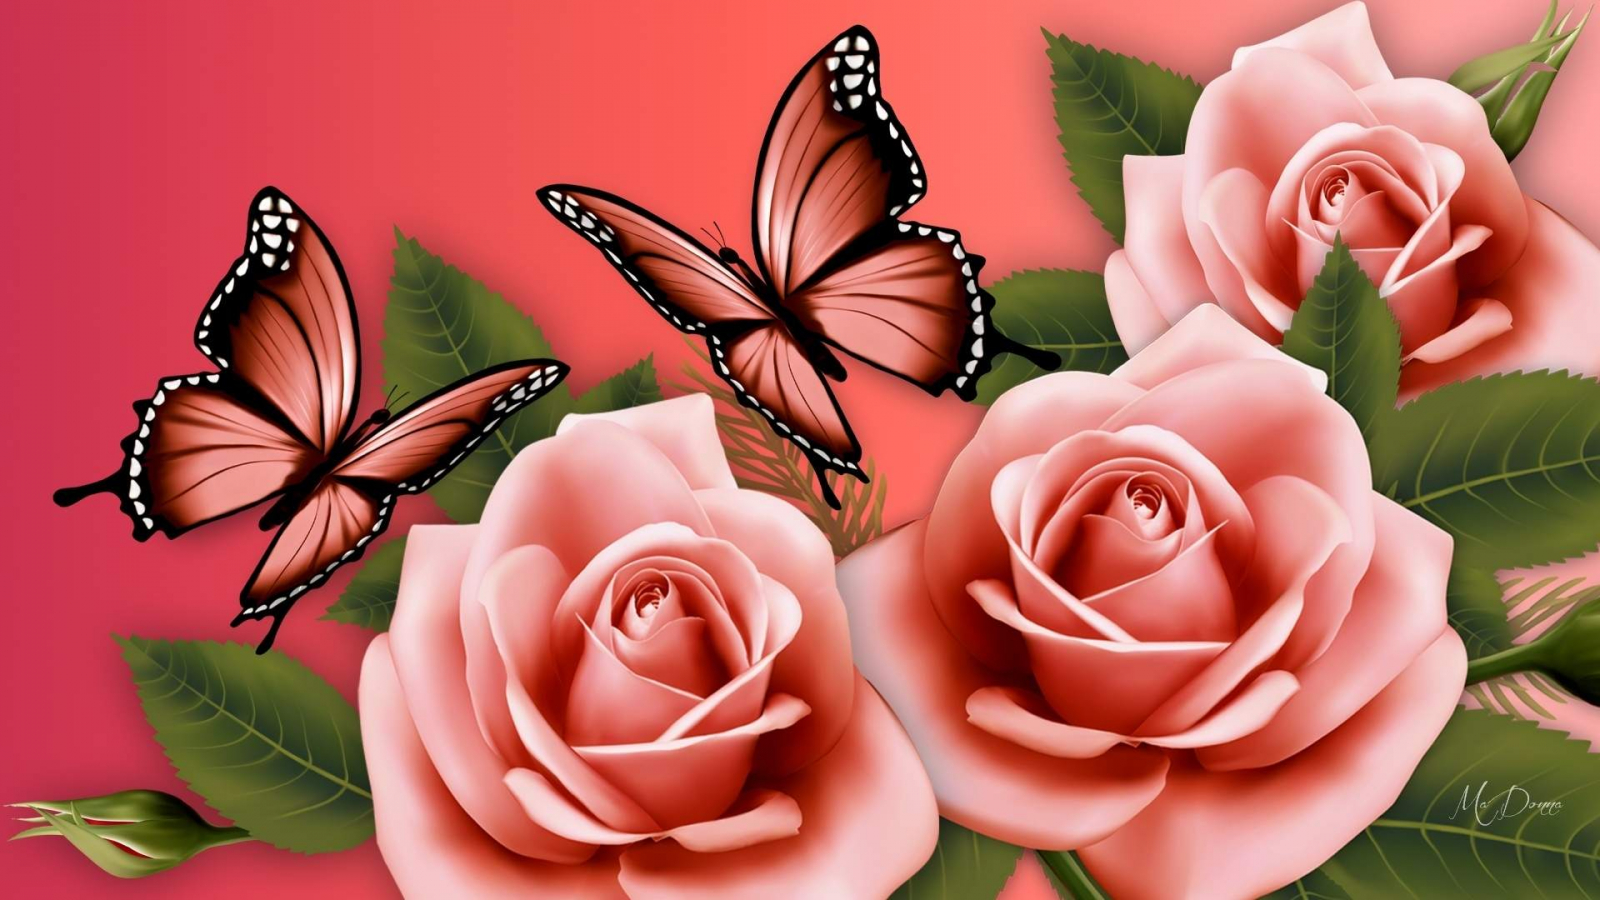 Free Download 35 Flowers And Butterflies Wallpapers Download At